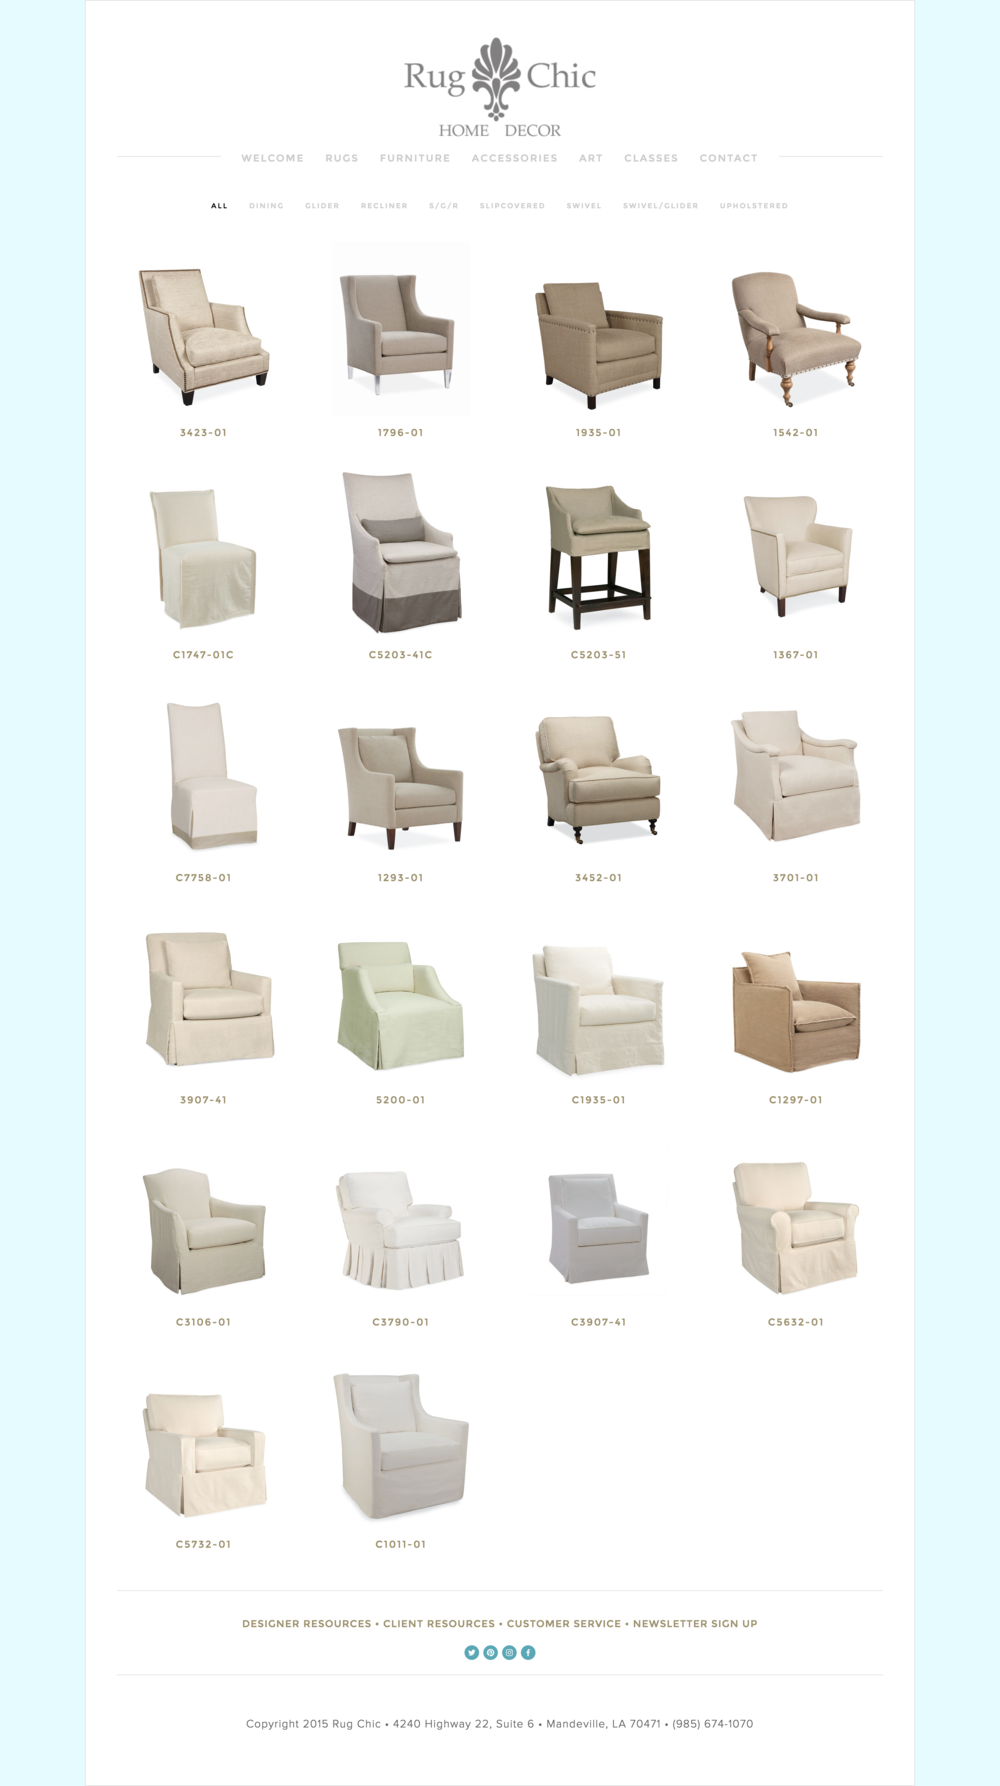 screencapture-rugchic-all-chairs-1474845756046.png